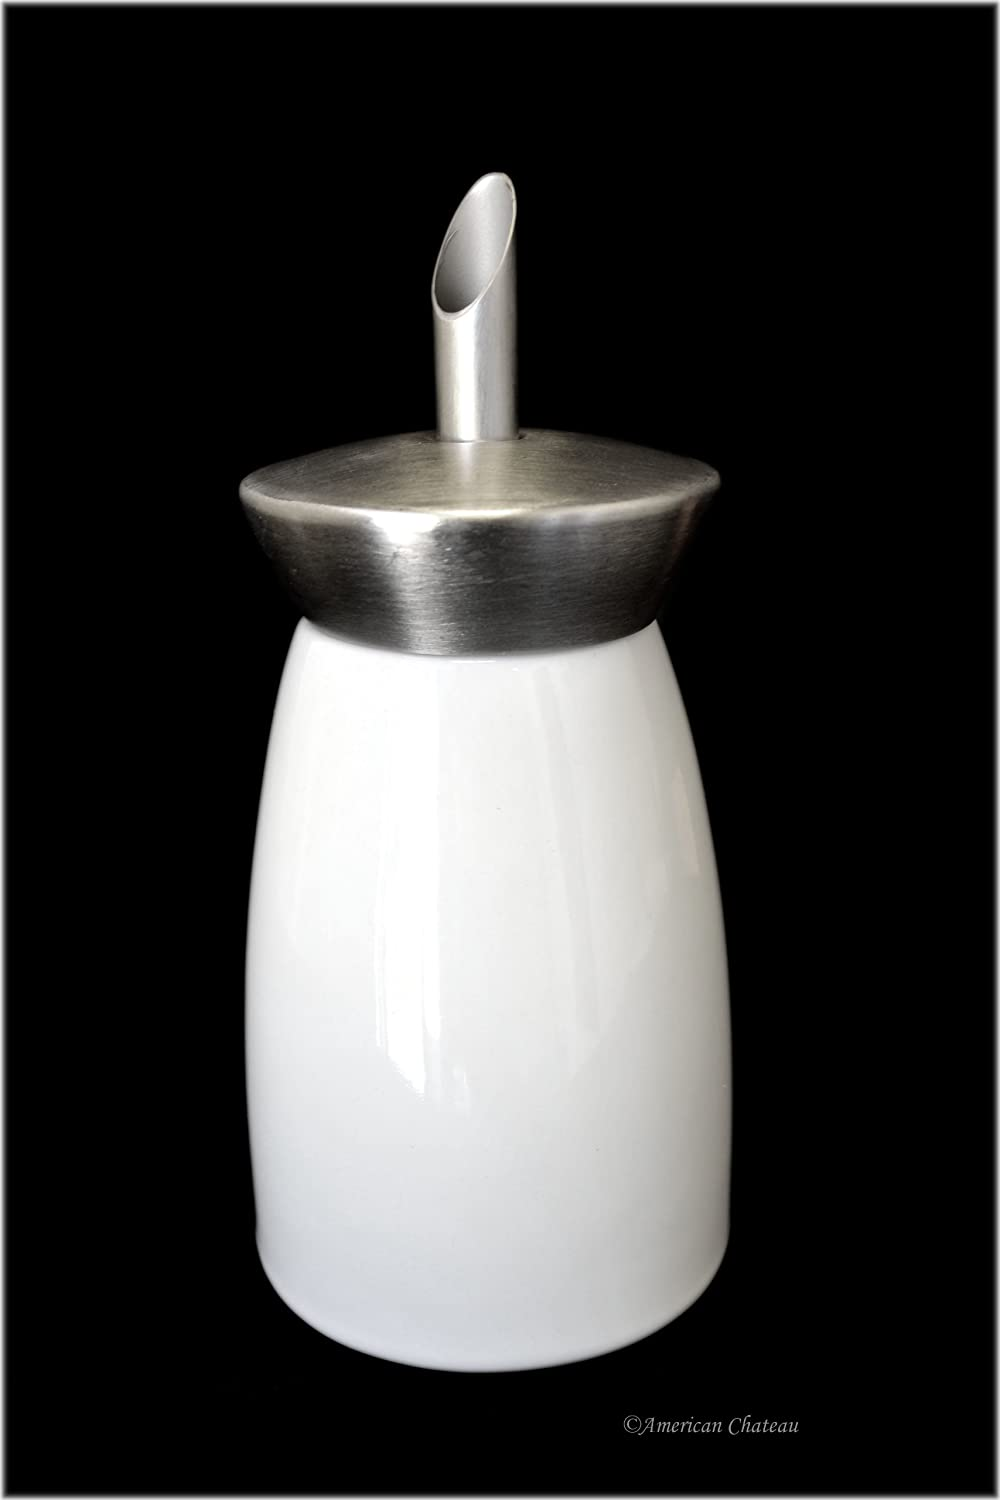 Bistro-Style Shaker White Porcelain & Stainless Steel Sugar Dispenser (1 Tsp) American Chateau